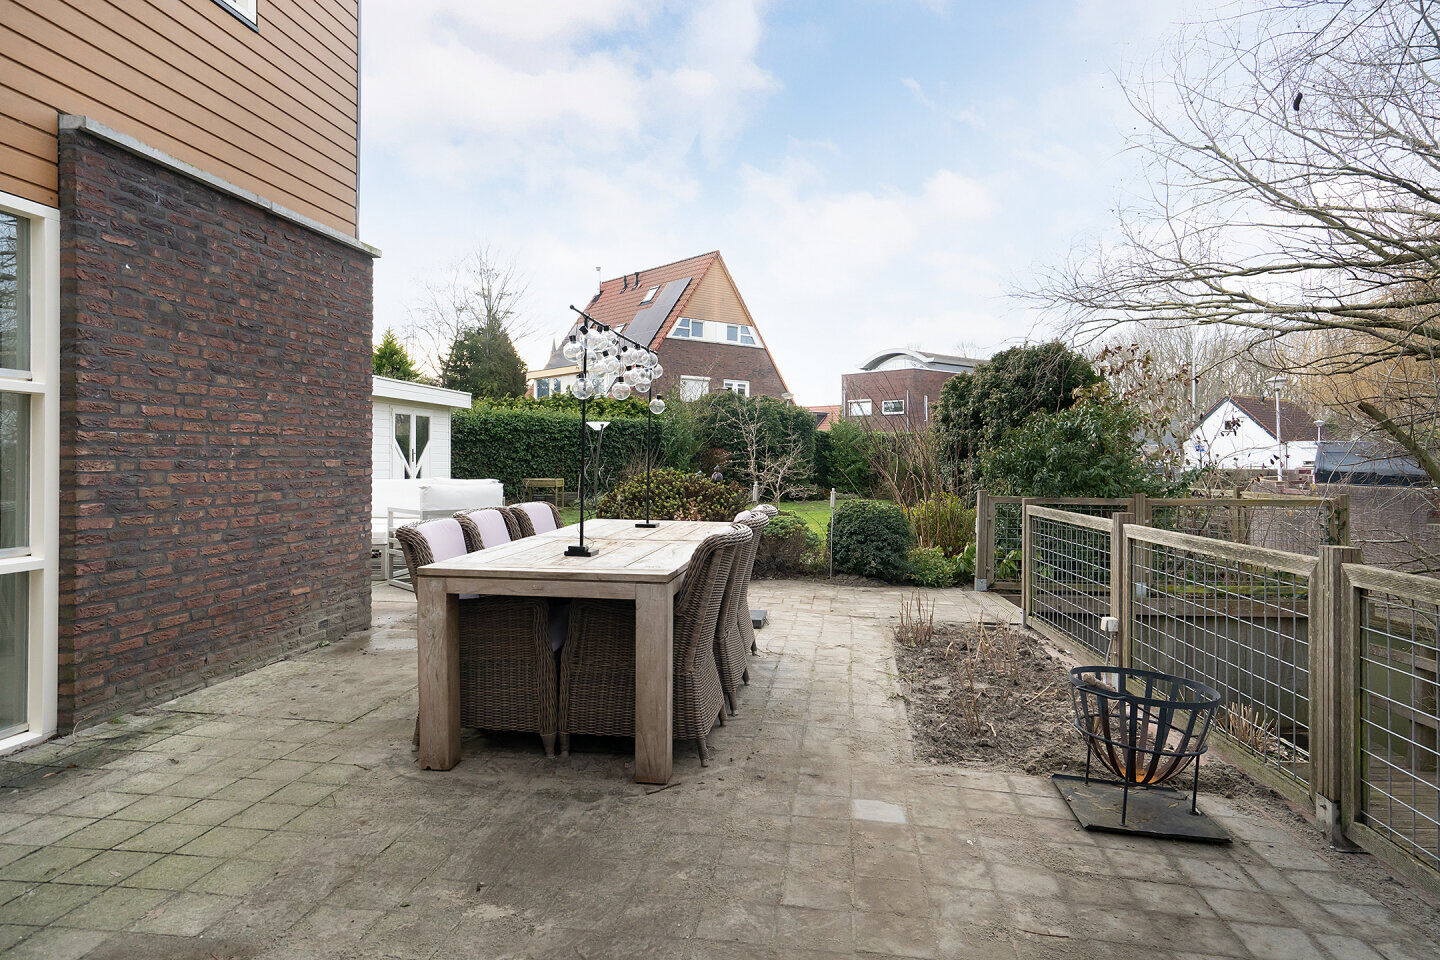 37157-jan_de_preestraat_1-steenbergen-2171457839